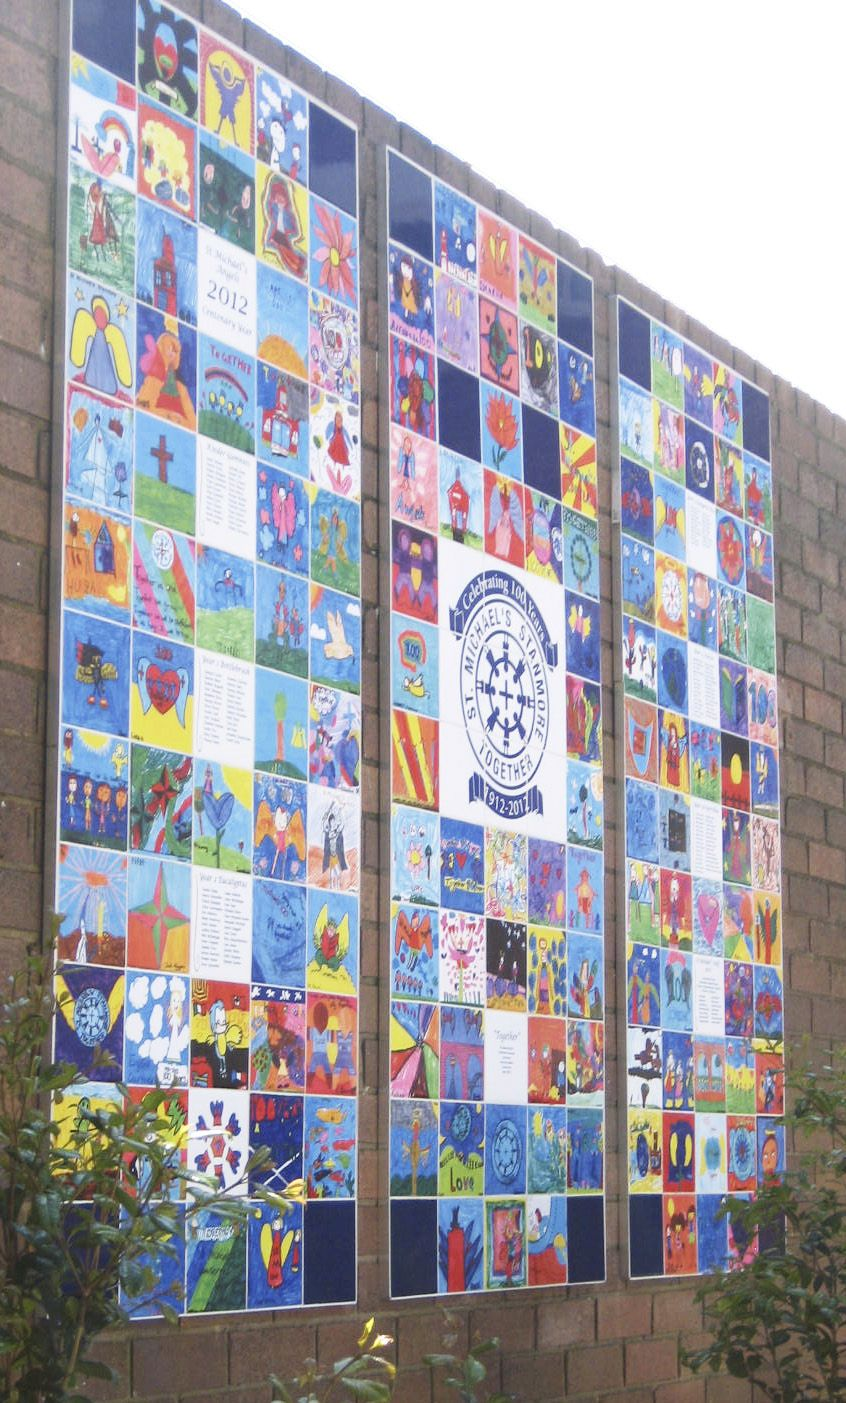 school wall murals google search school decorations leave your mark with this stunning wall mural for your school great celebration piece and fabulous fundraiser